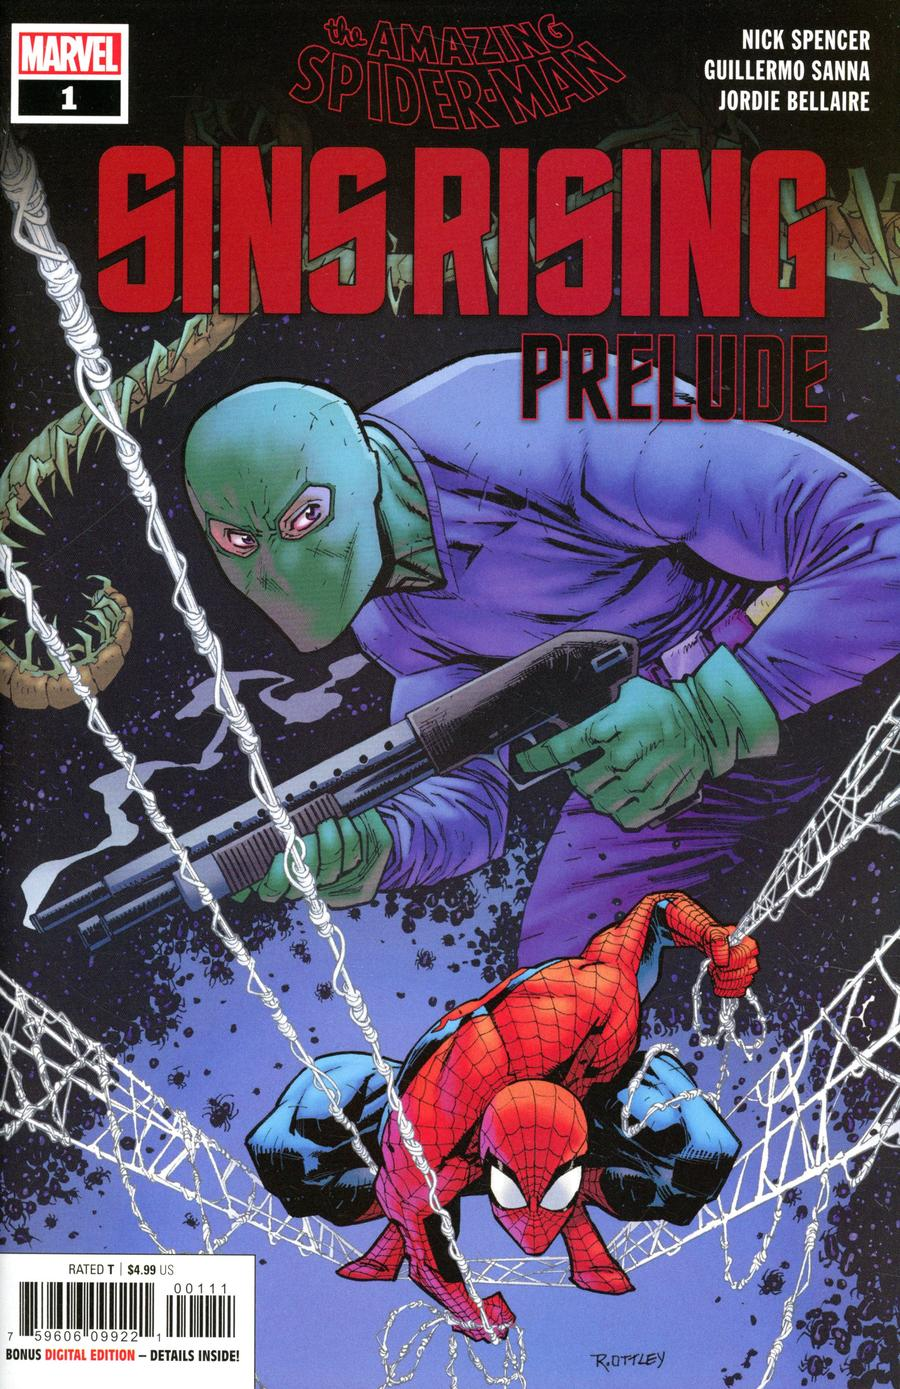 Amazing Spider-Man Sins Rising Prelude #1 Cover A Regular Ryan Ottley Cover